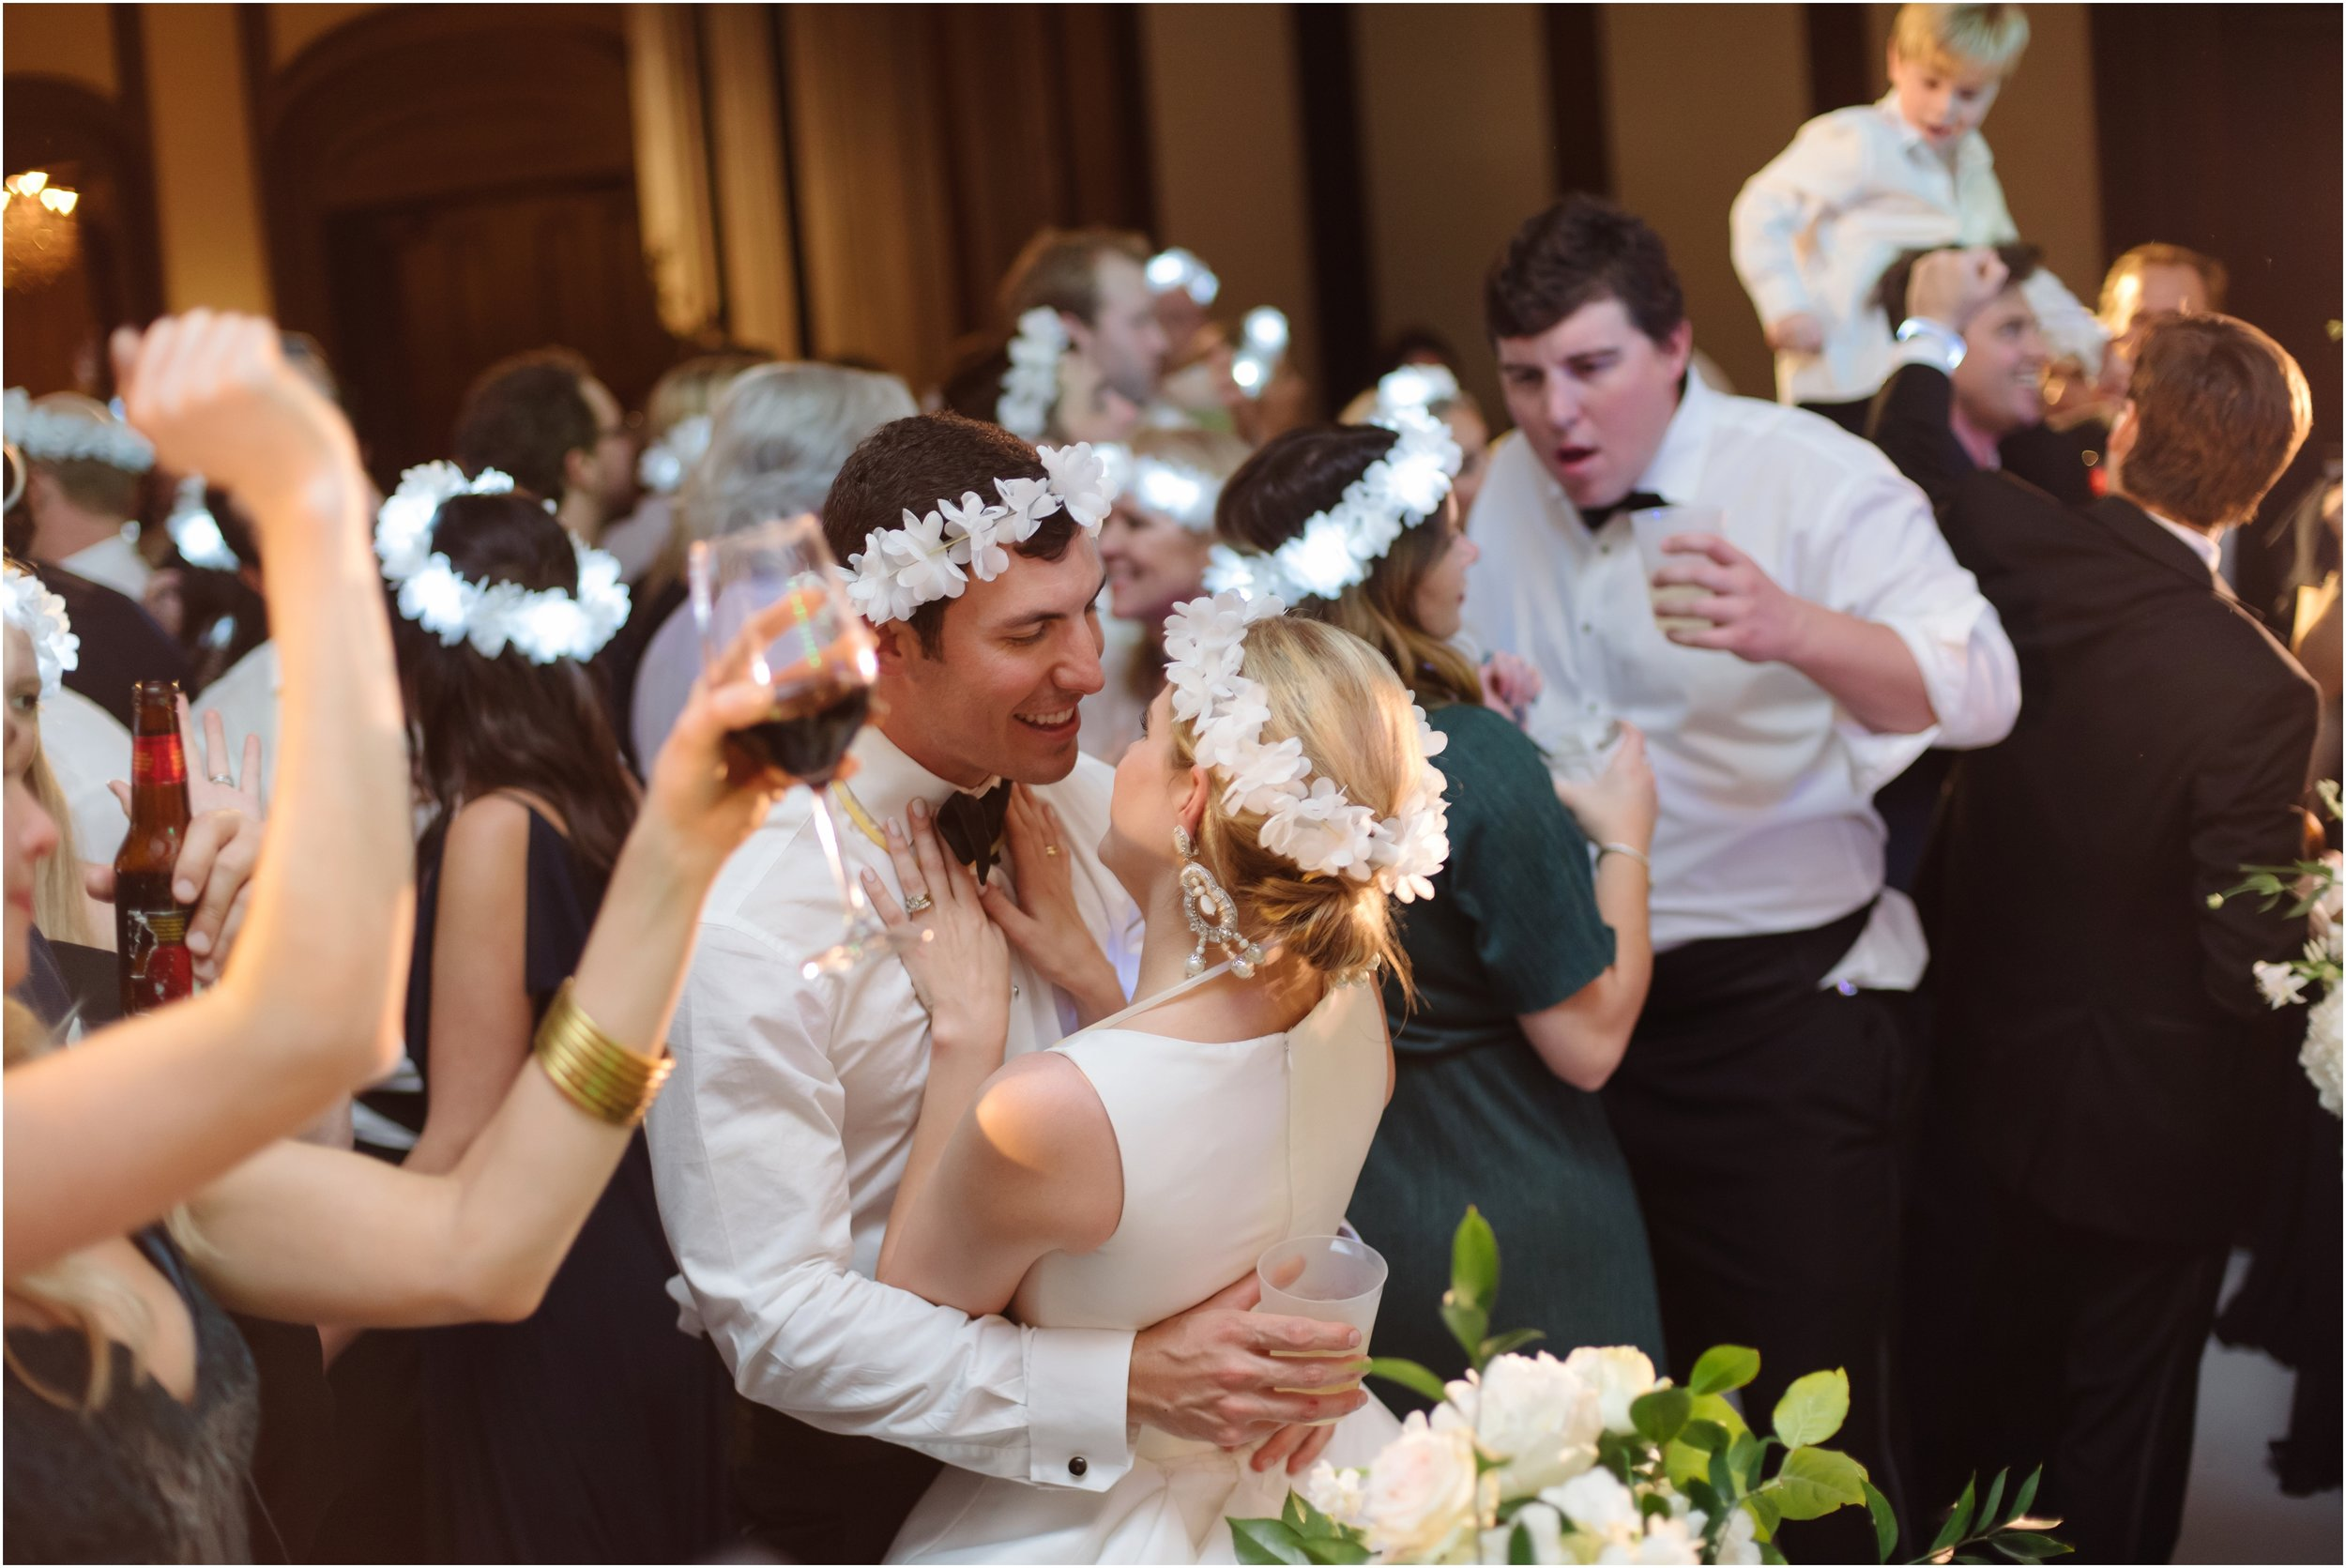 dallasweddingphotographer_DallasCountryClub_Hannah+Matthew_0071.jpg